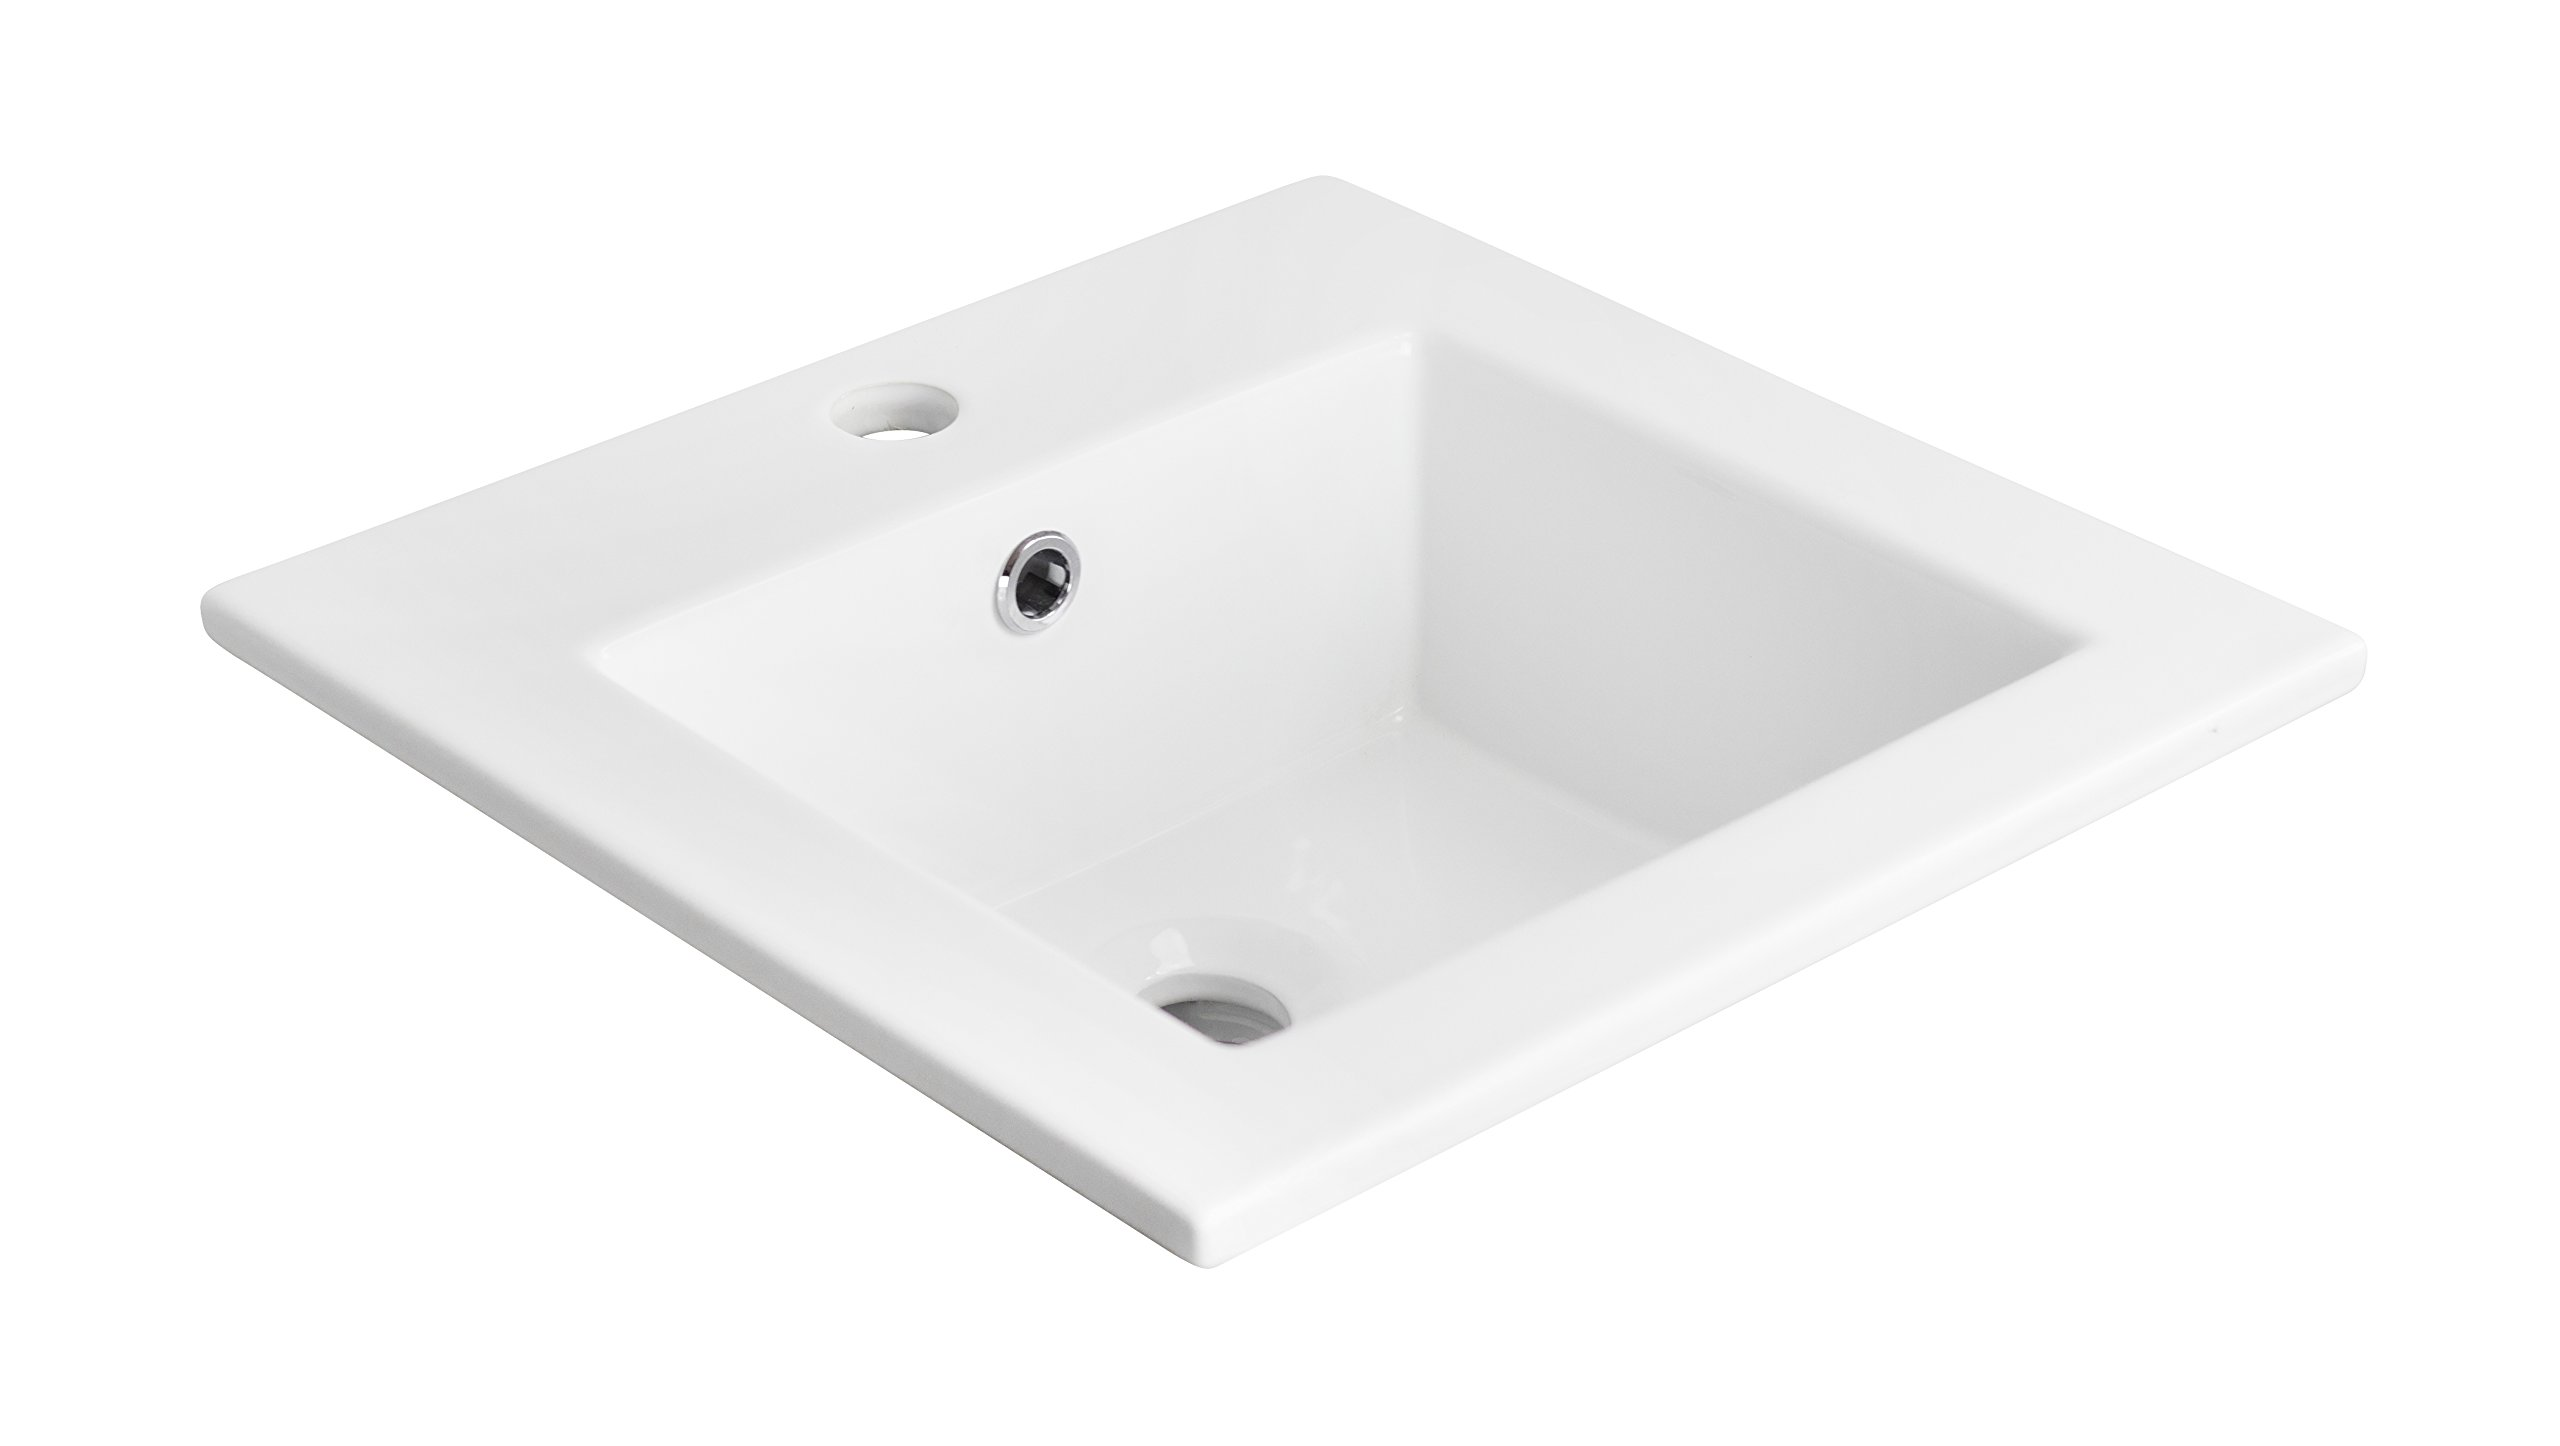 21-in W x 18-in D Above Counter Square Vessel In White Color For Single Hole Faucet by American Imaginations